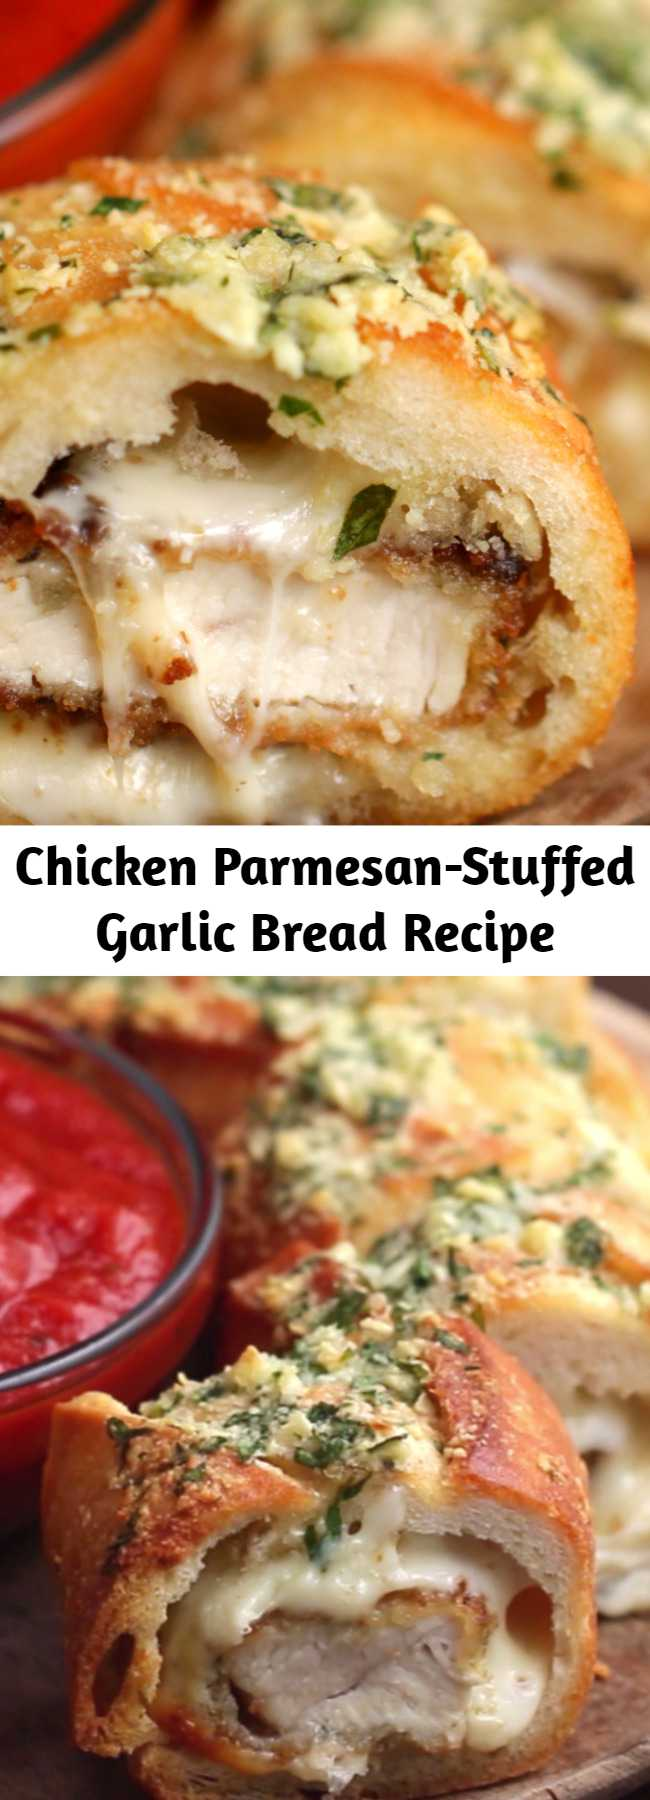 Chicken Parmesan-Stuffed Garlic Bread Recipe - Super easy to stuff the bread just make sure you get a big baguette and not a little one. Loved it!